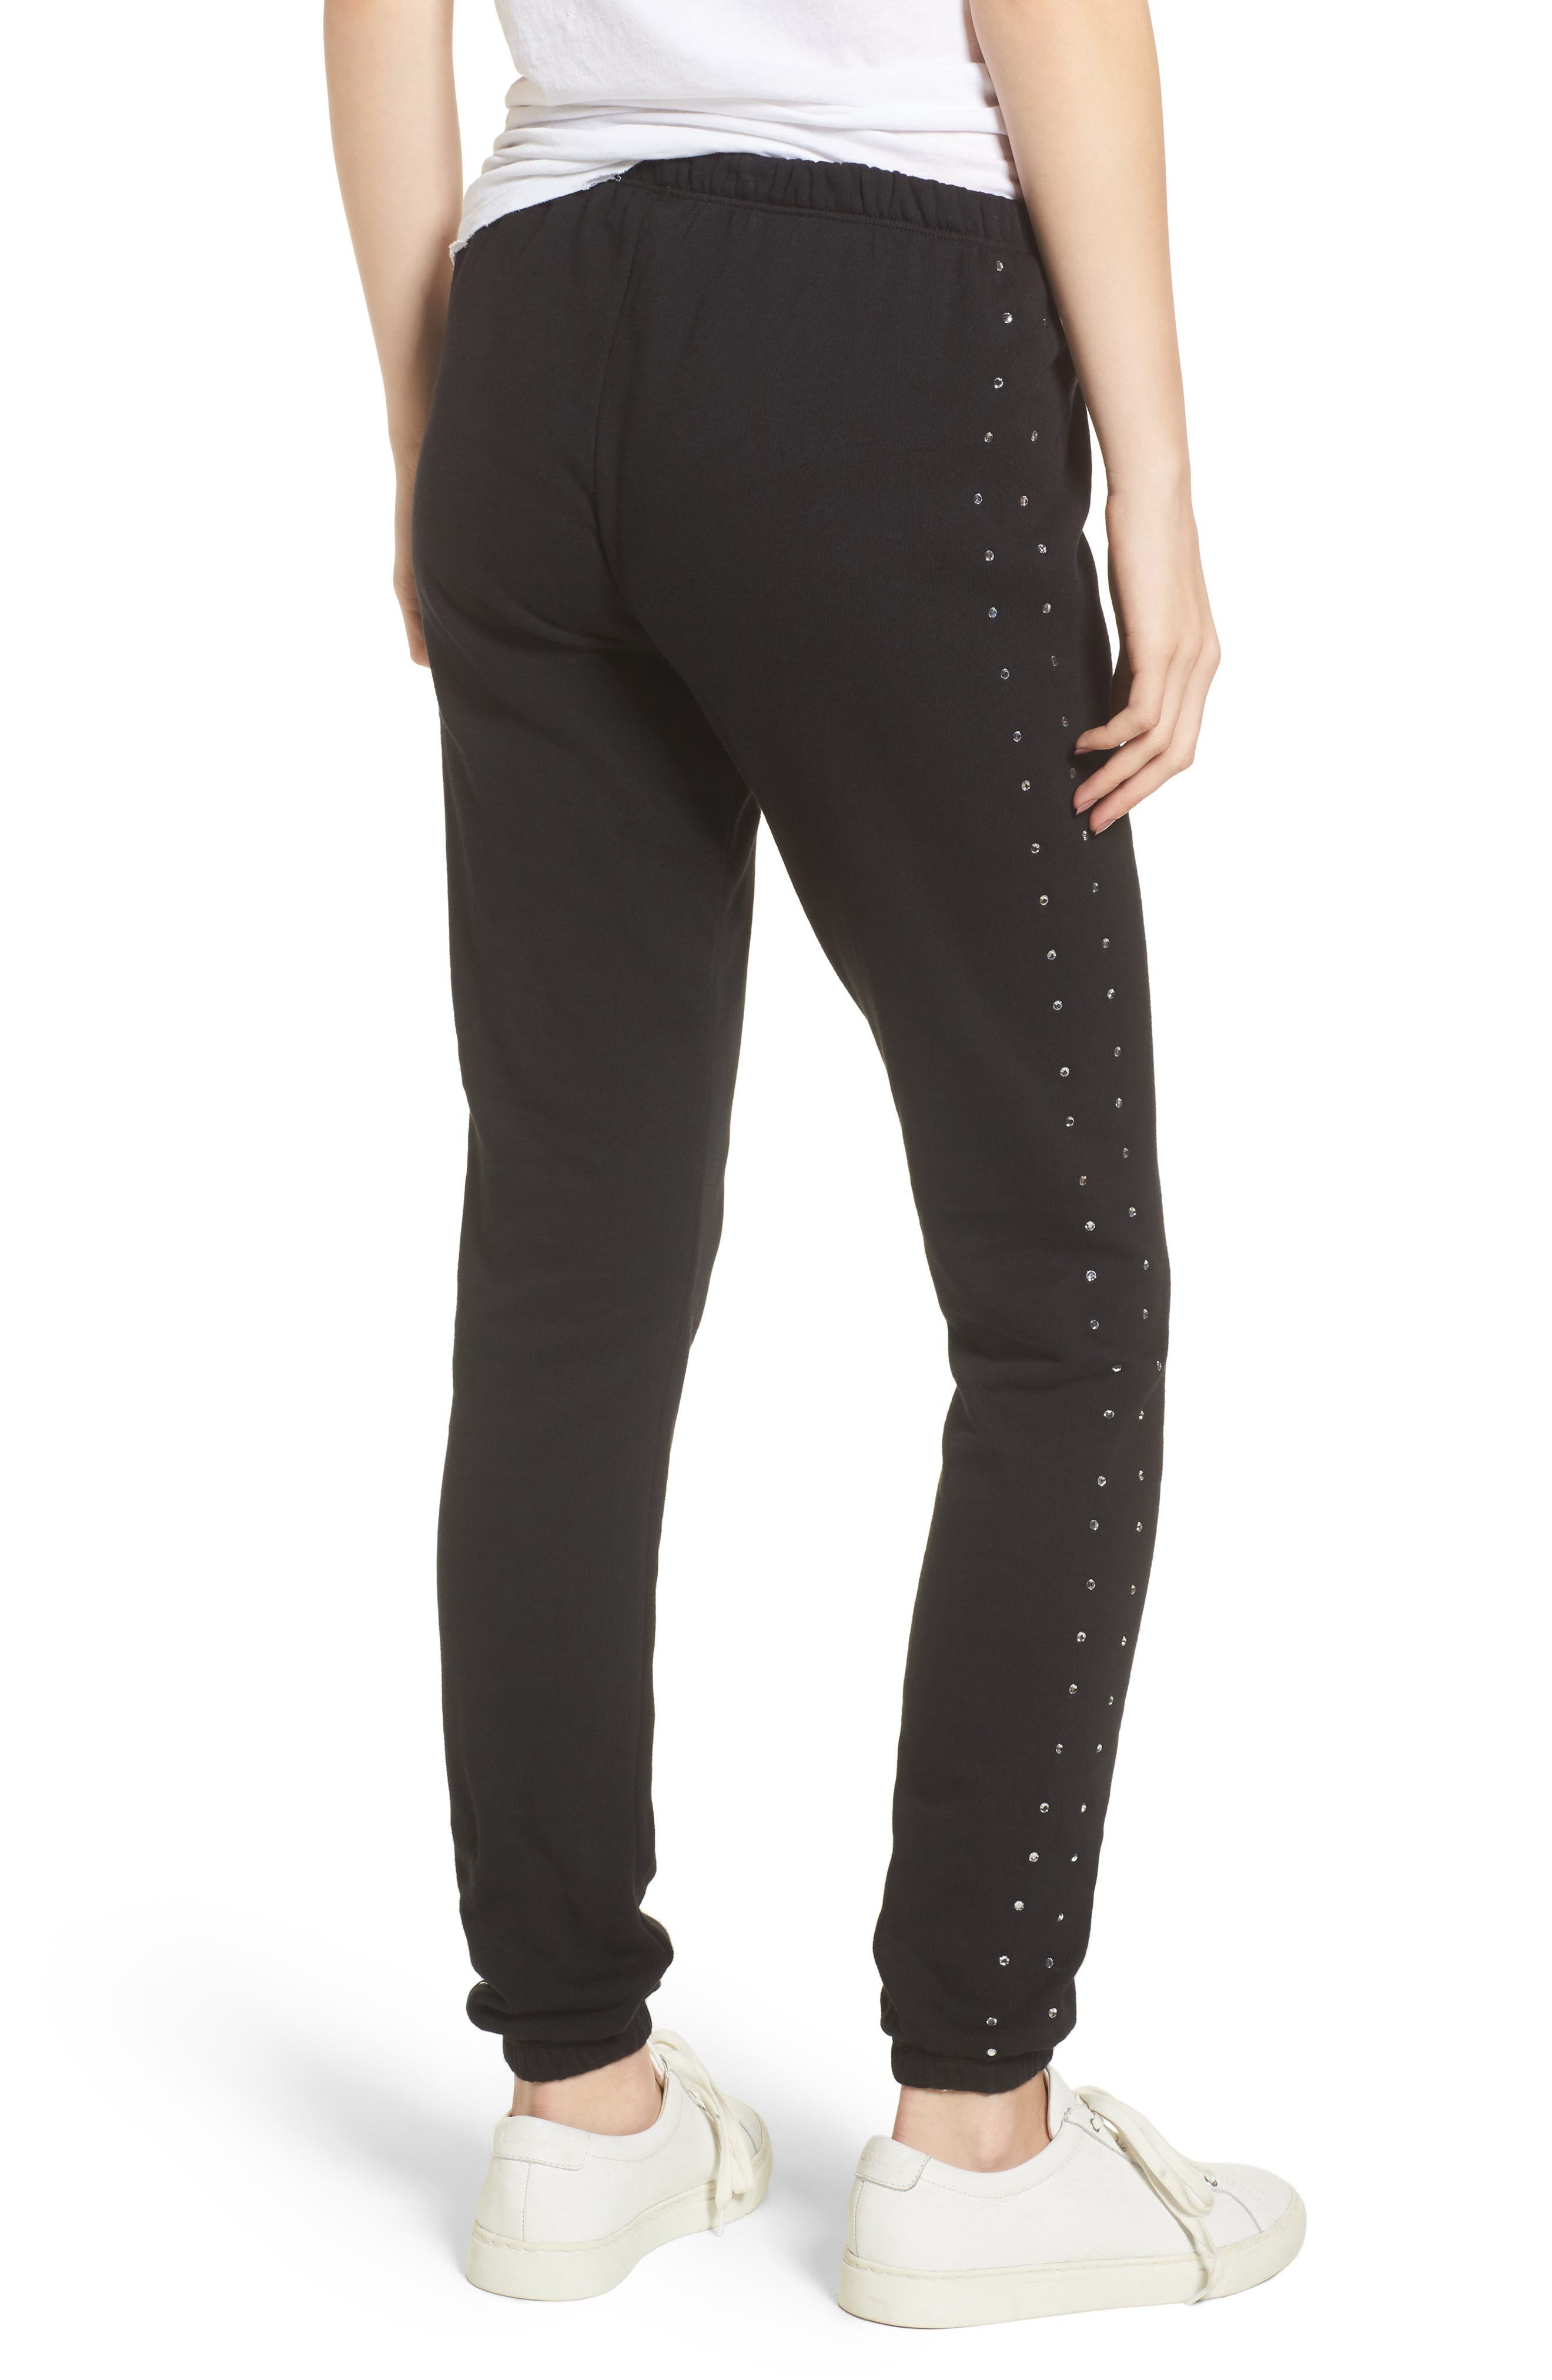 Glitz Sweatpants,                             Alternate thumbnail 2, color,